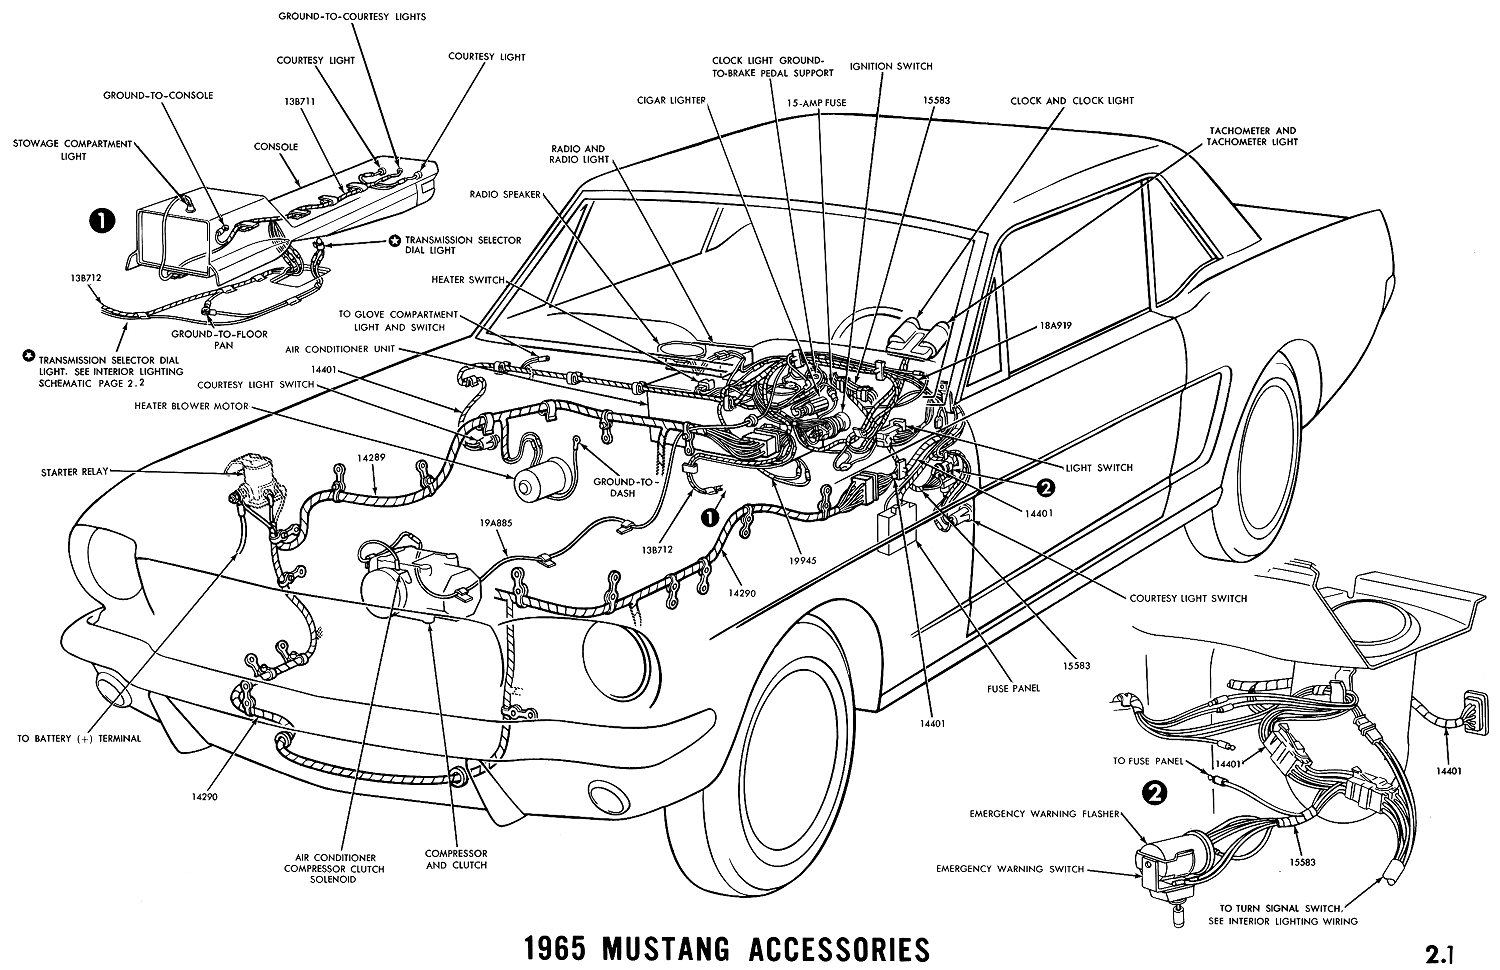 1965 Mustang Wiring Diagrams Average Joe Restoration Chrysler Starter Relay Diagram Accessories Pictorial Or Schematic